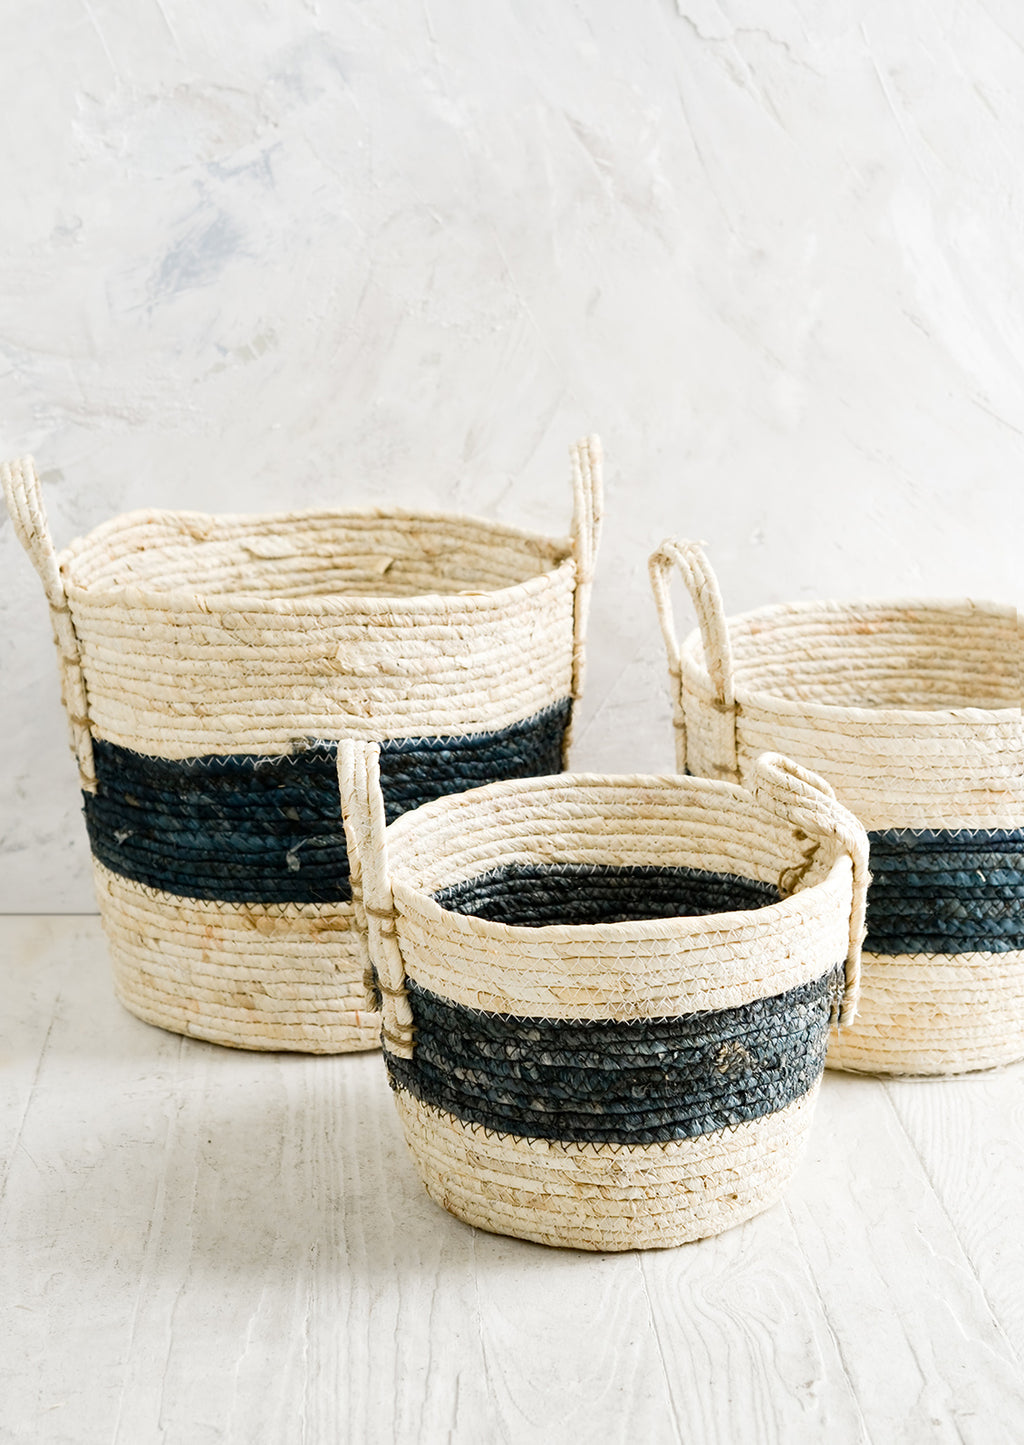 2: Three natural fiber storage baskets in three incremental sizes.